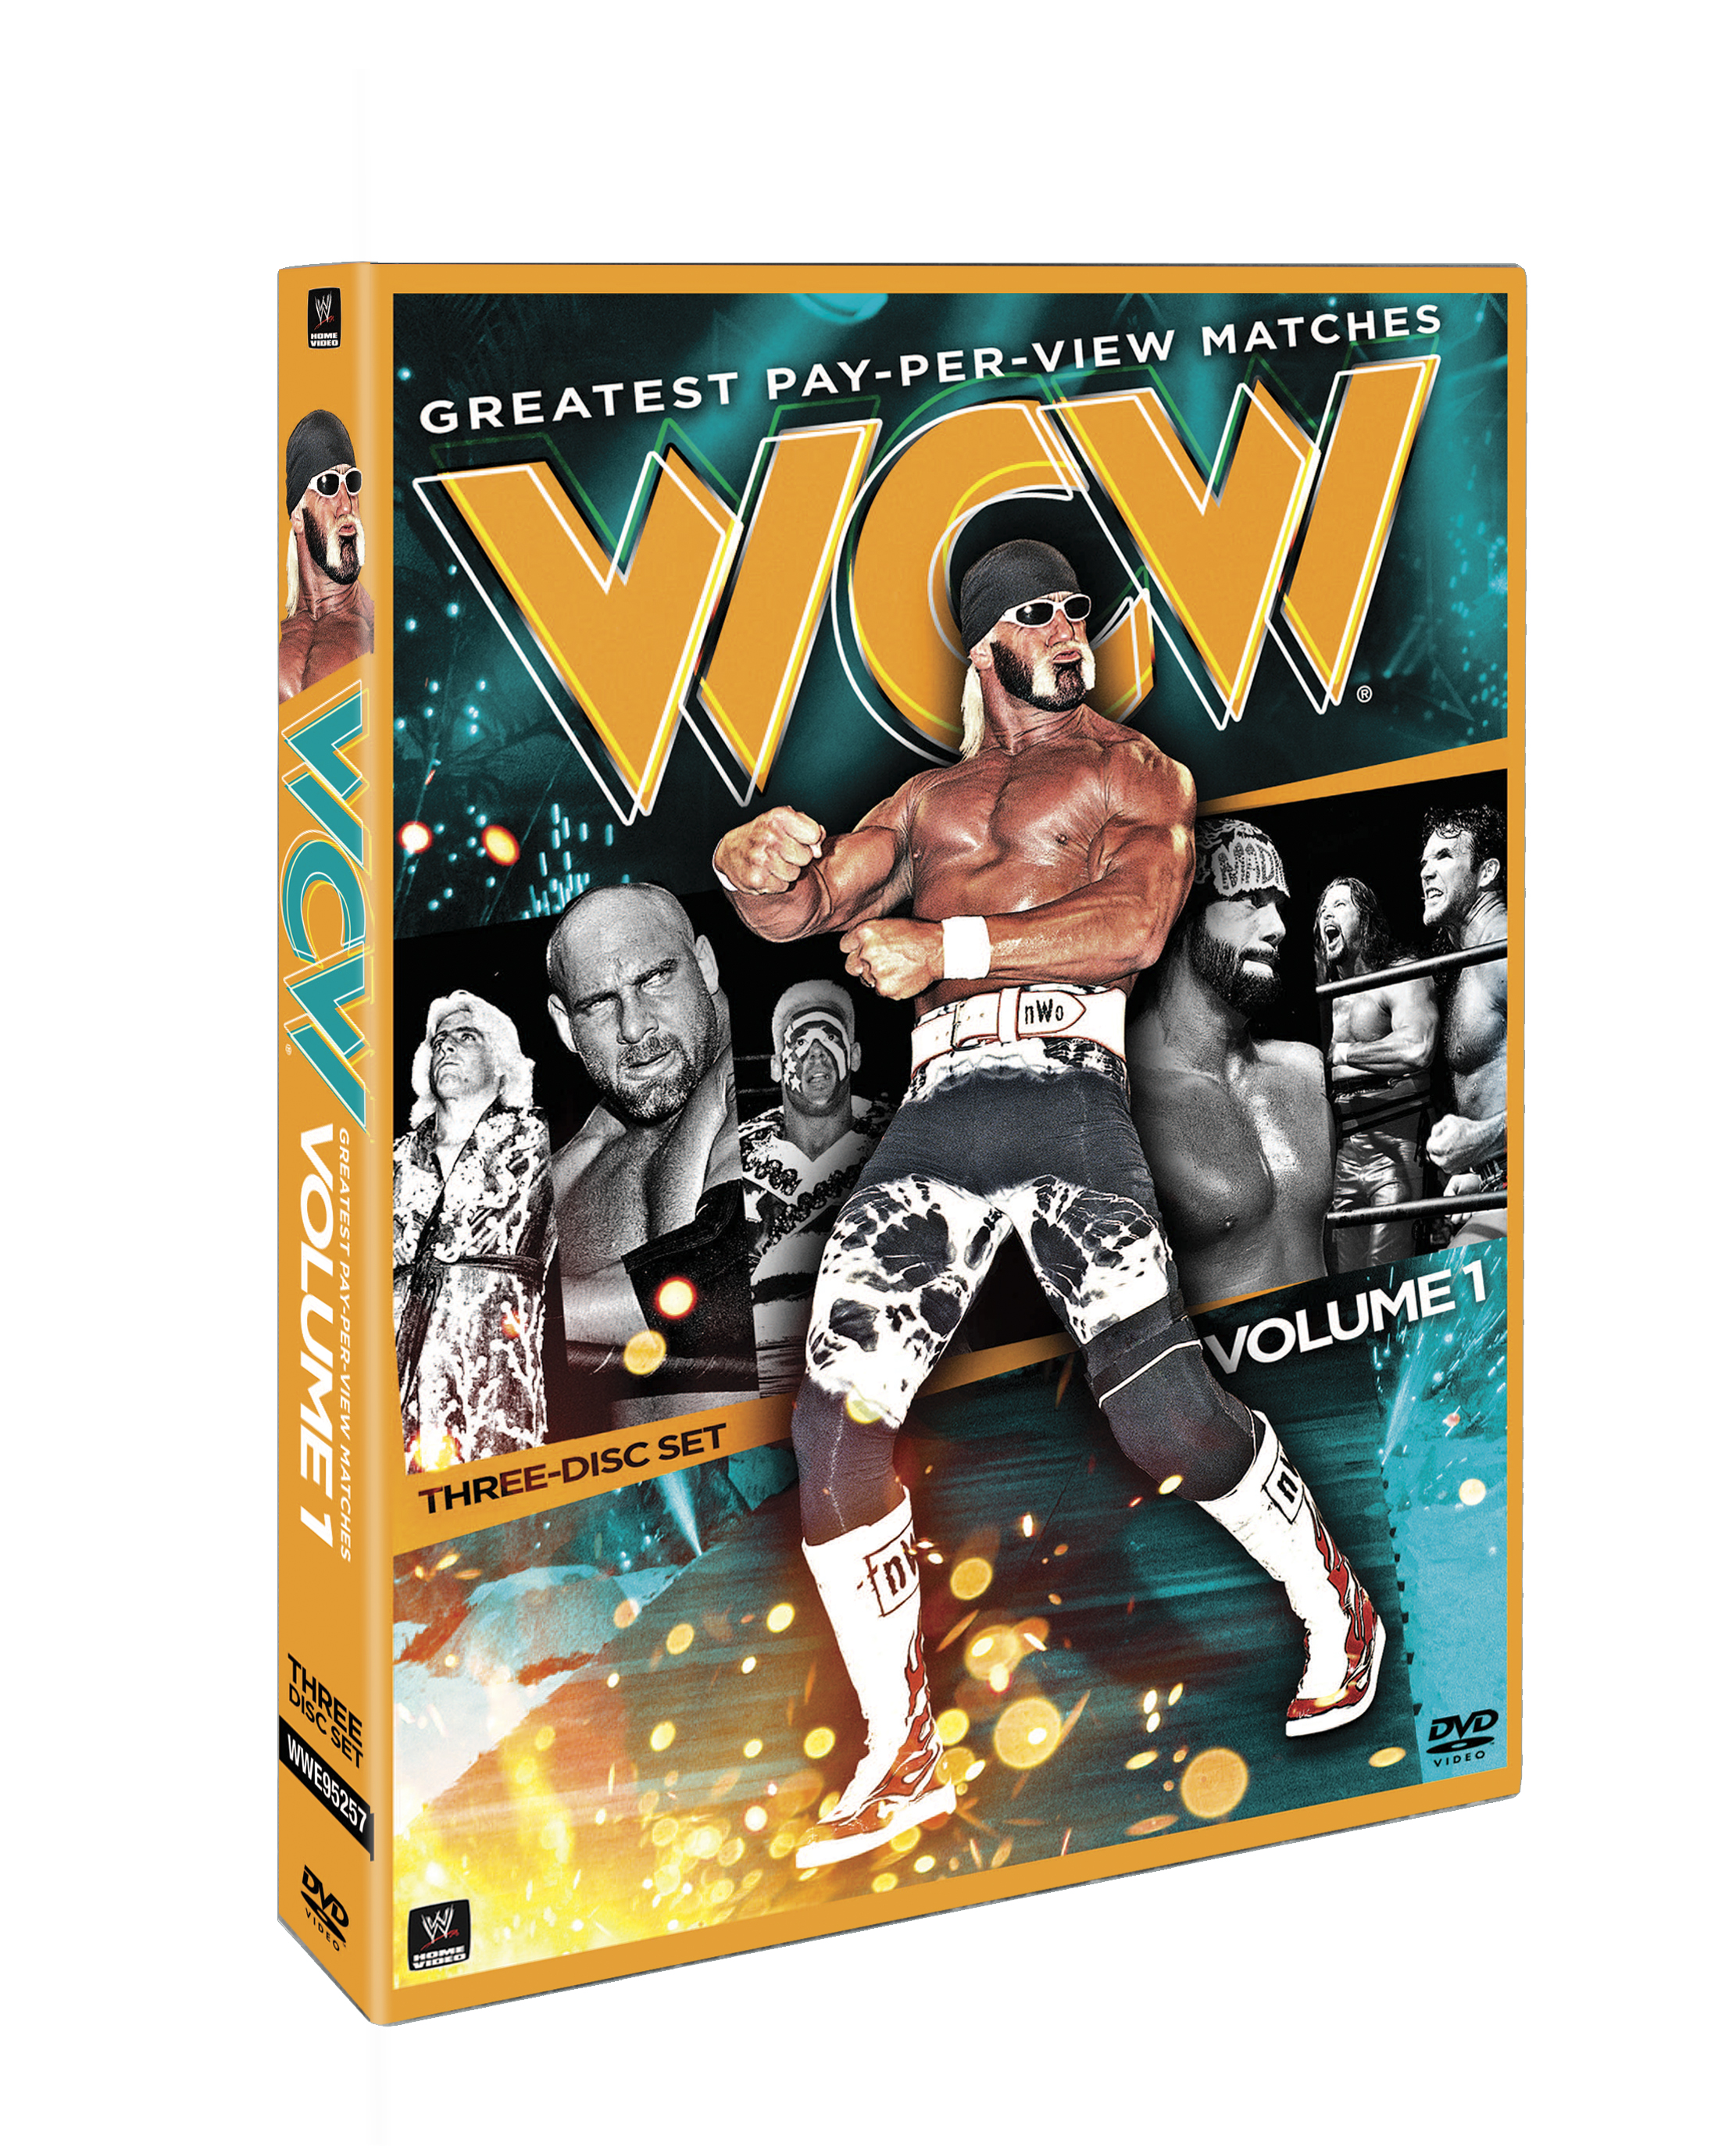 WCW's Greatest PPV Matches: Volume 1 - WWE - Cinedigm Entertainment